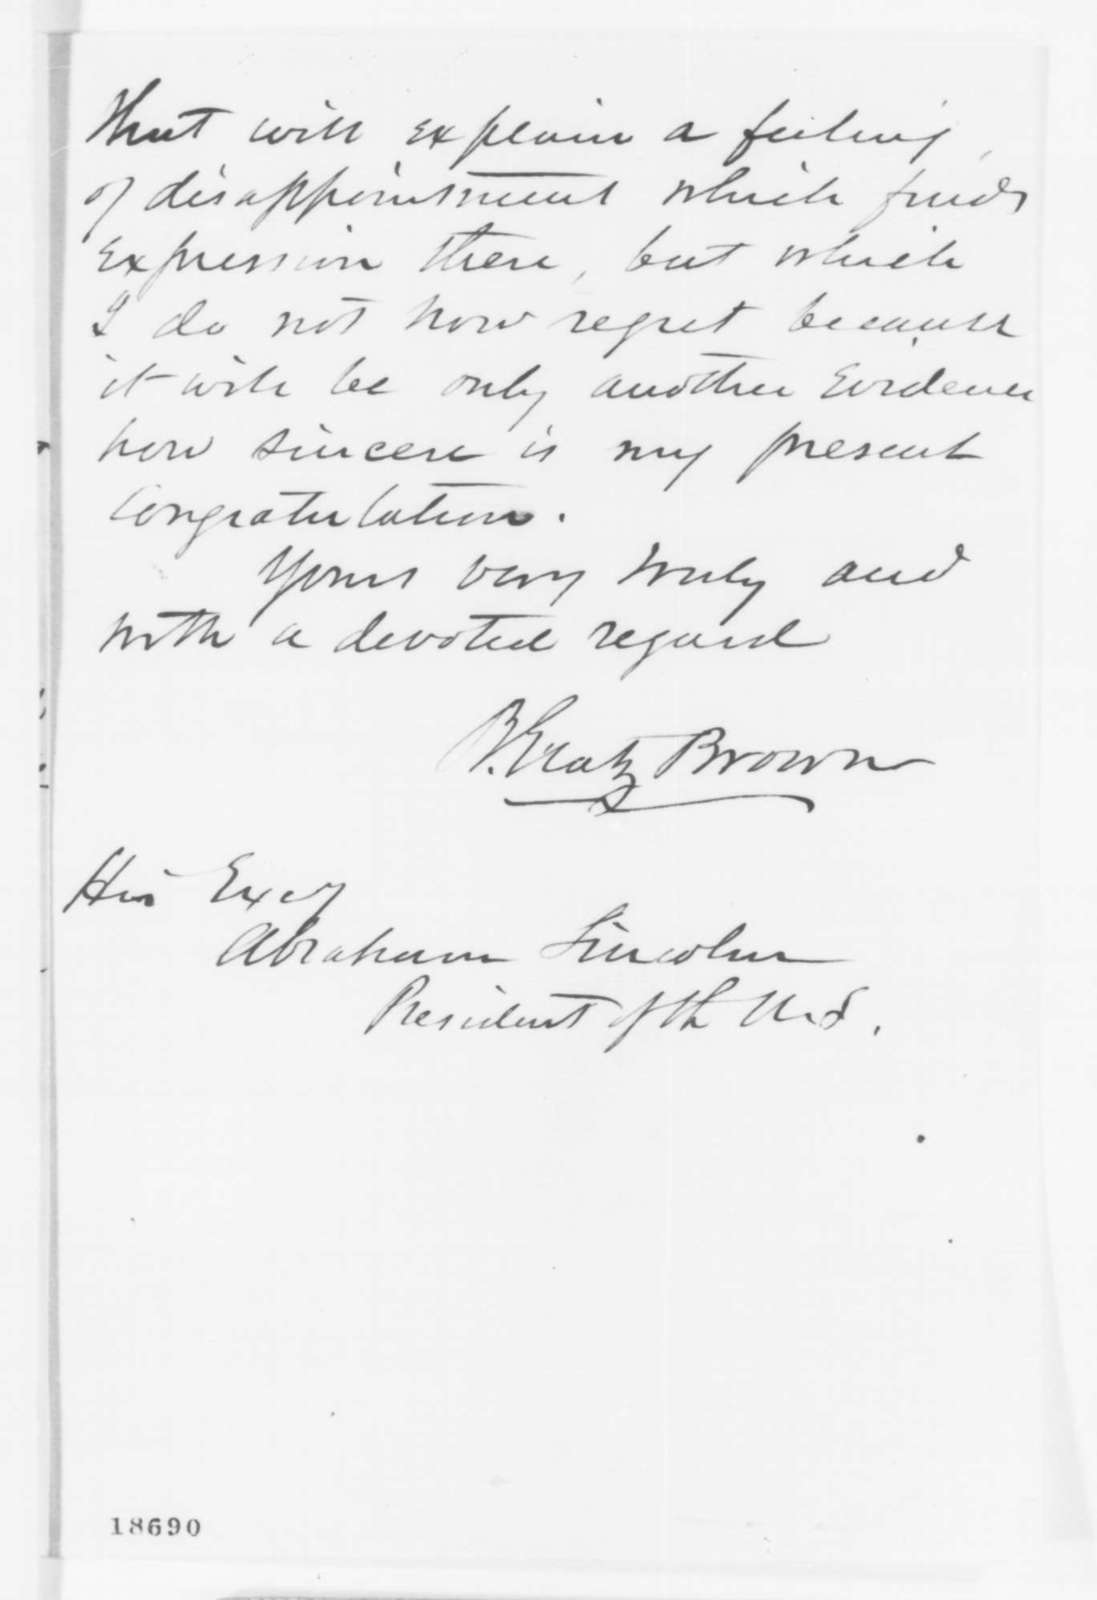 Benjamin Gratz Brown to Abraham Lincoln, Saturday, September 27, 1862  (Support for Emancipation Proclamation)